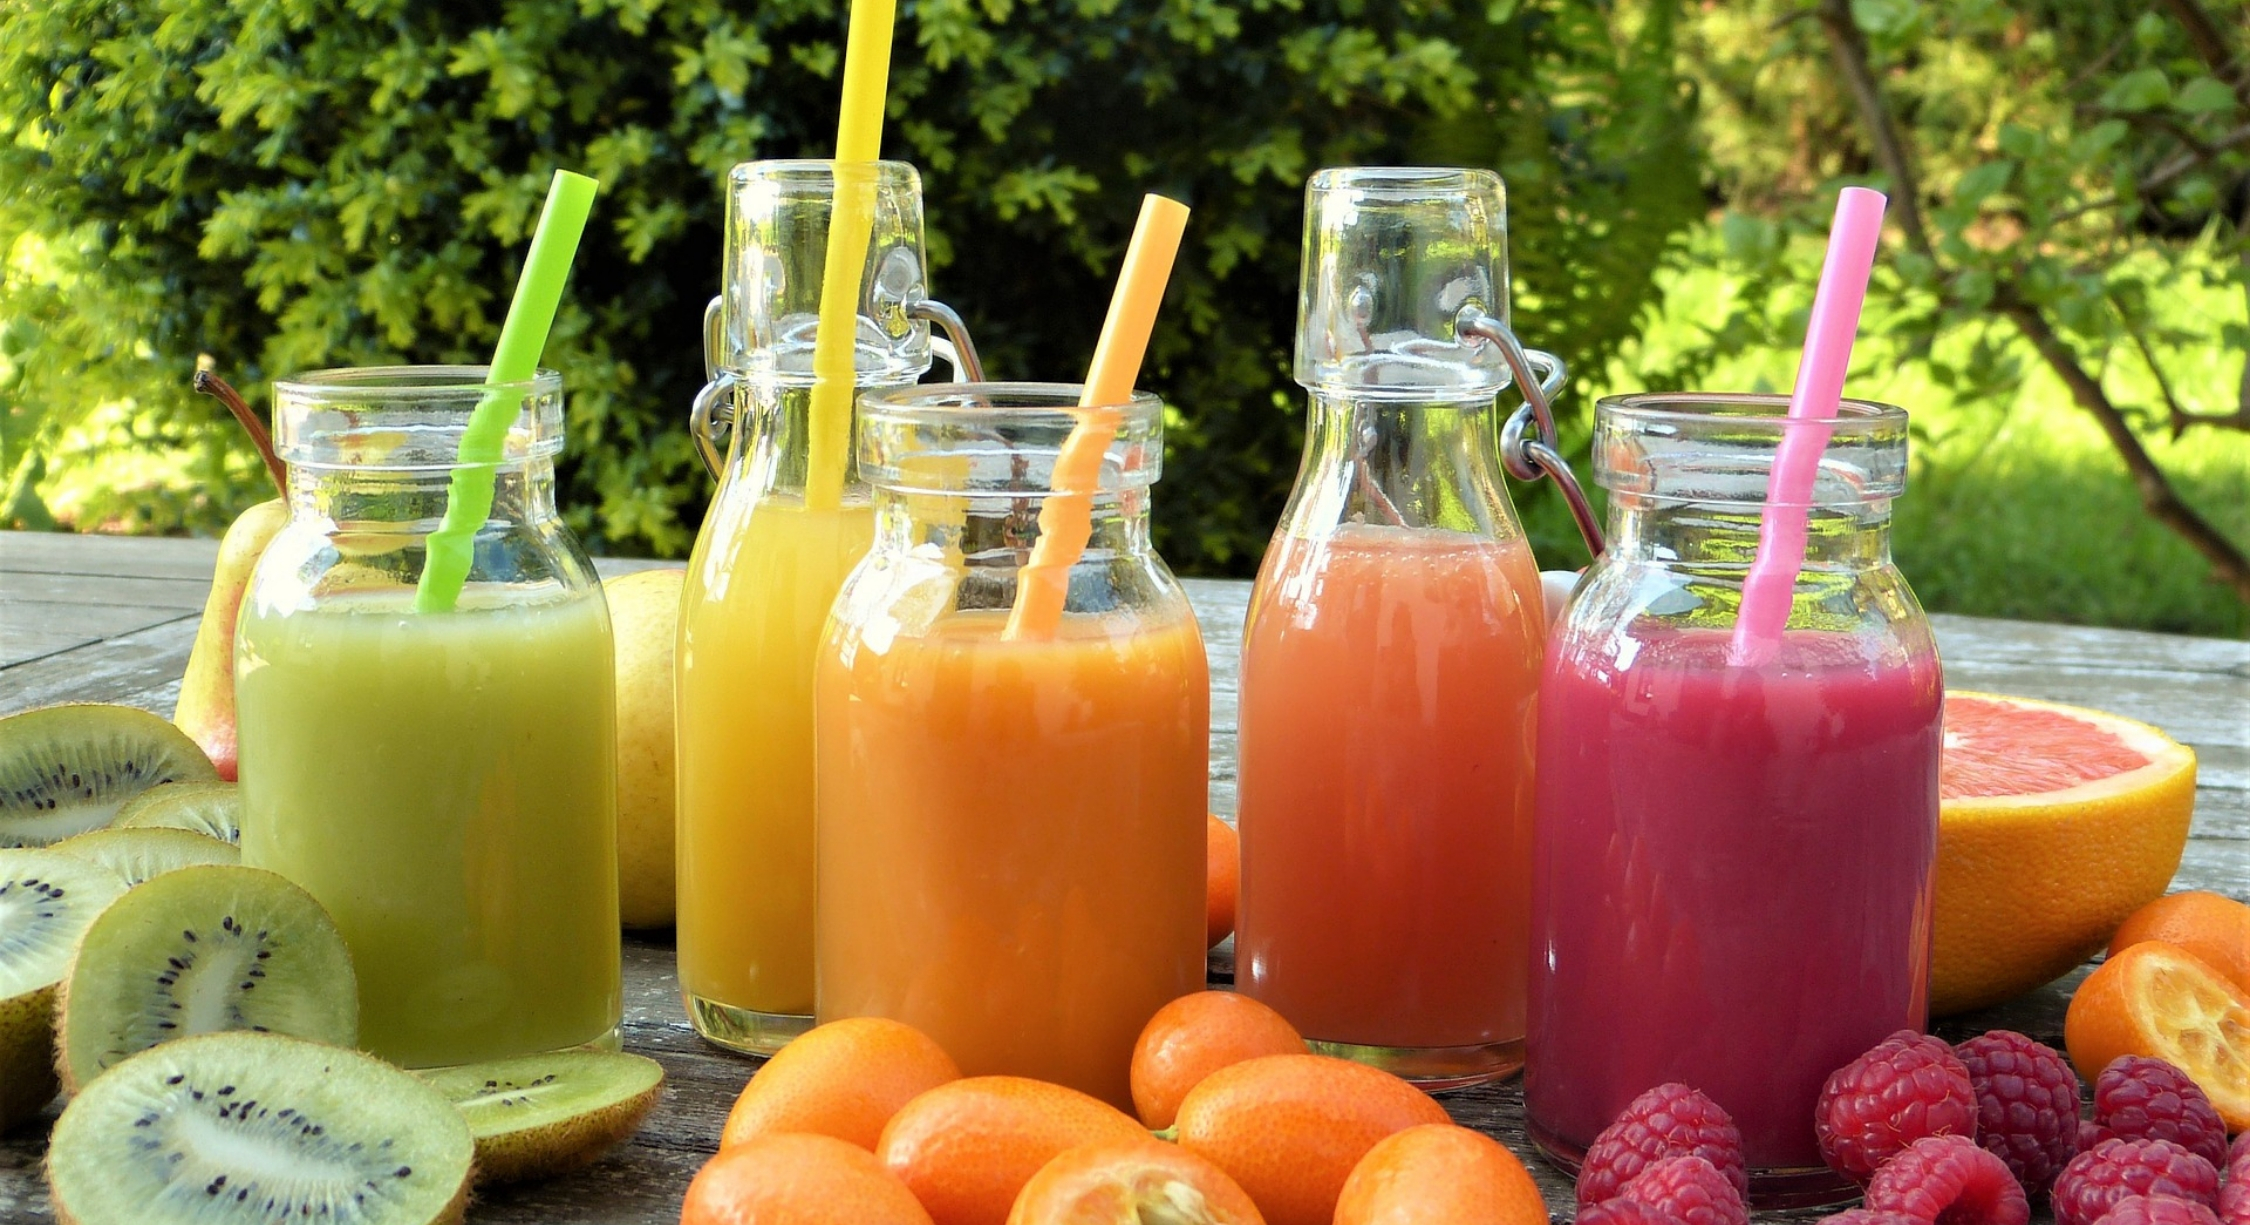 Juice cleanses and detoxes - do they work